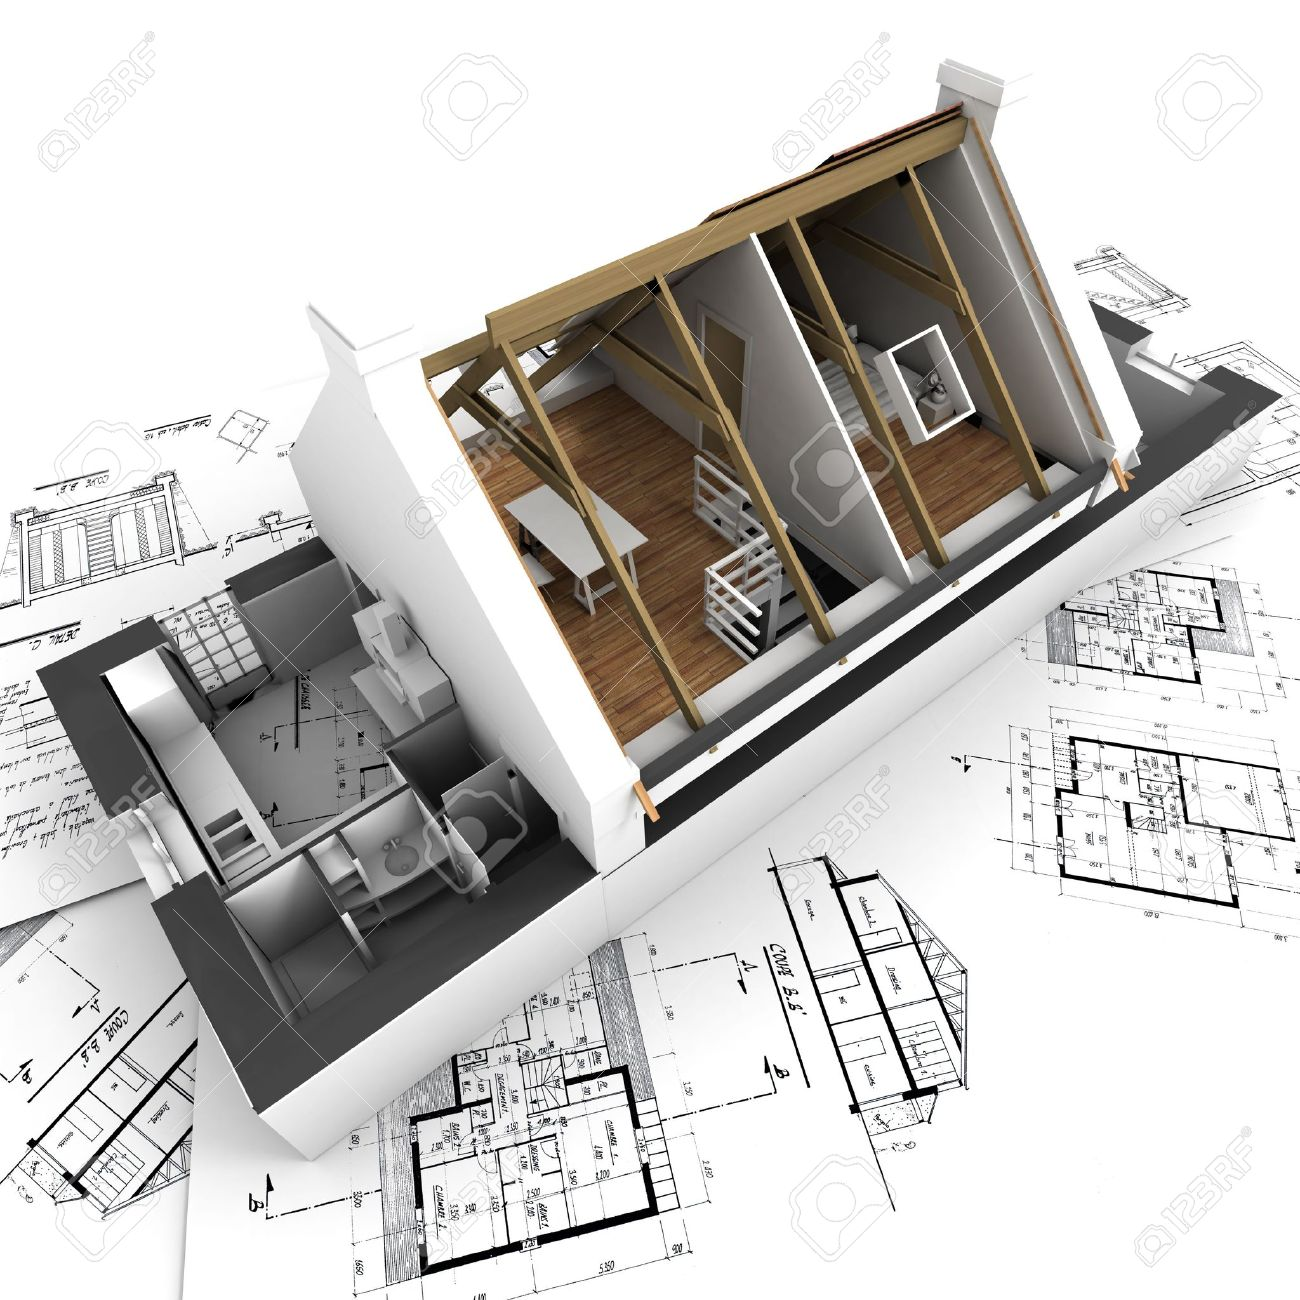 Beautiful 3D Rendering Of A Roofless House On Top Of Architect Plans Stock Photo    2472078